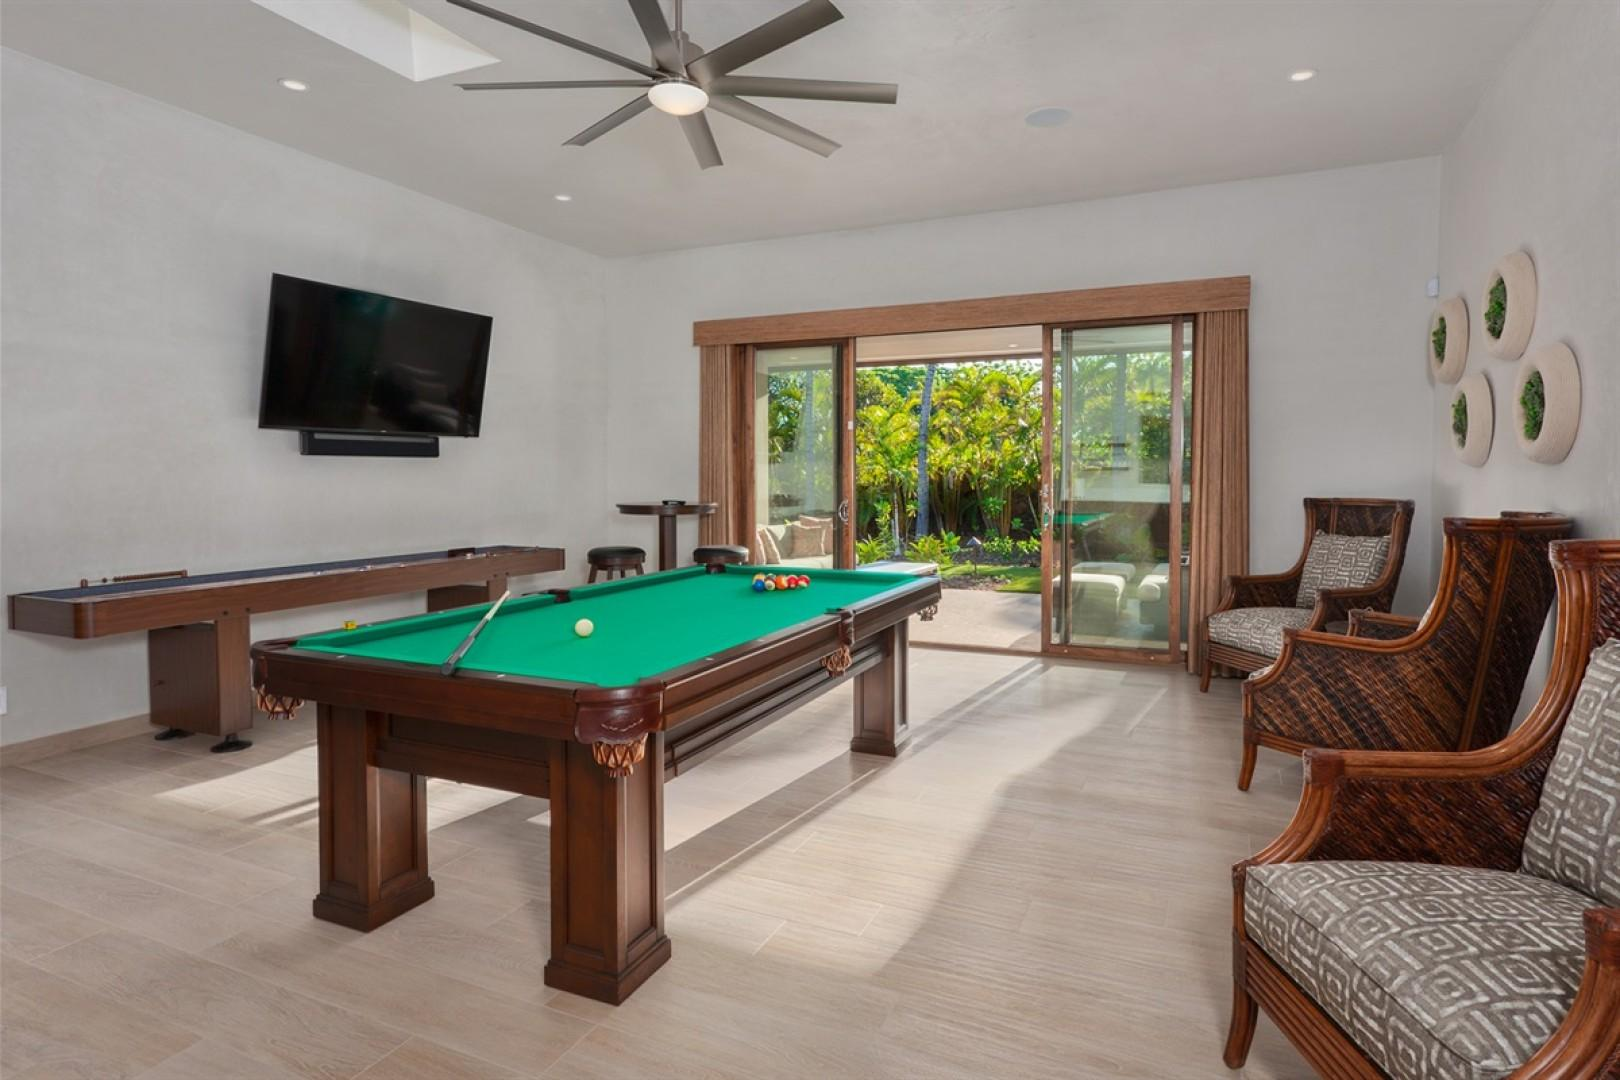 """Game room equipped with pool table, shuffleboard, wet bar and 65"""" Smart flat screen television."""